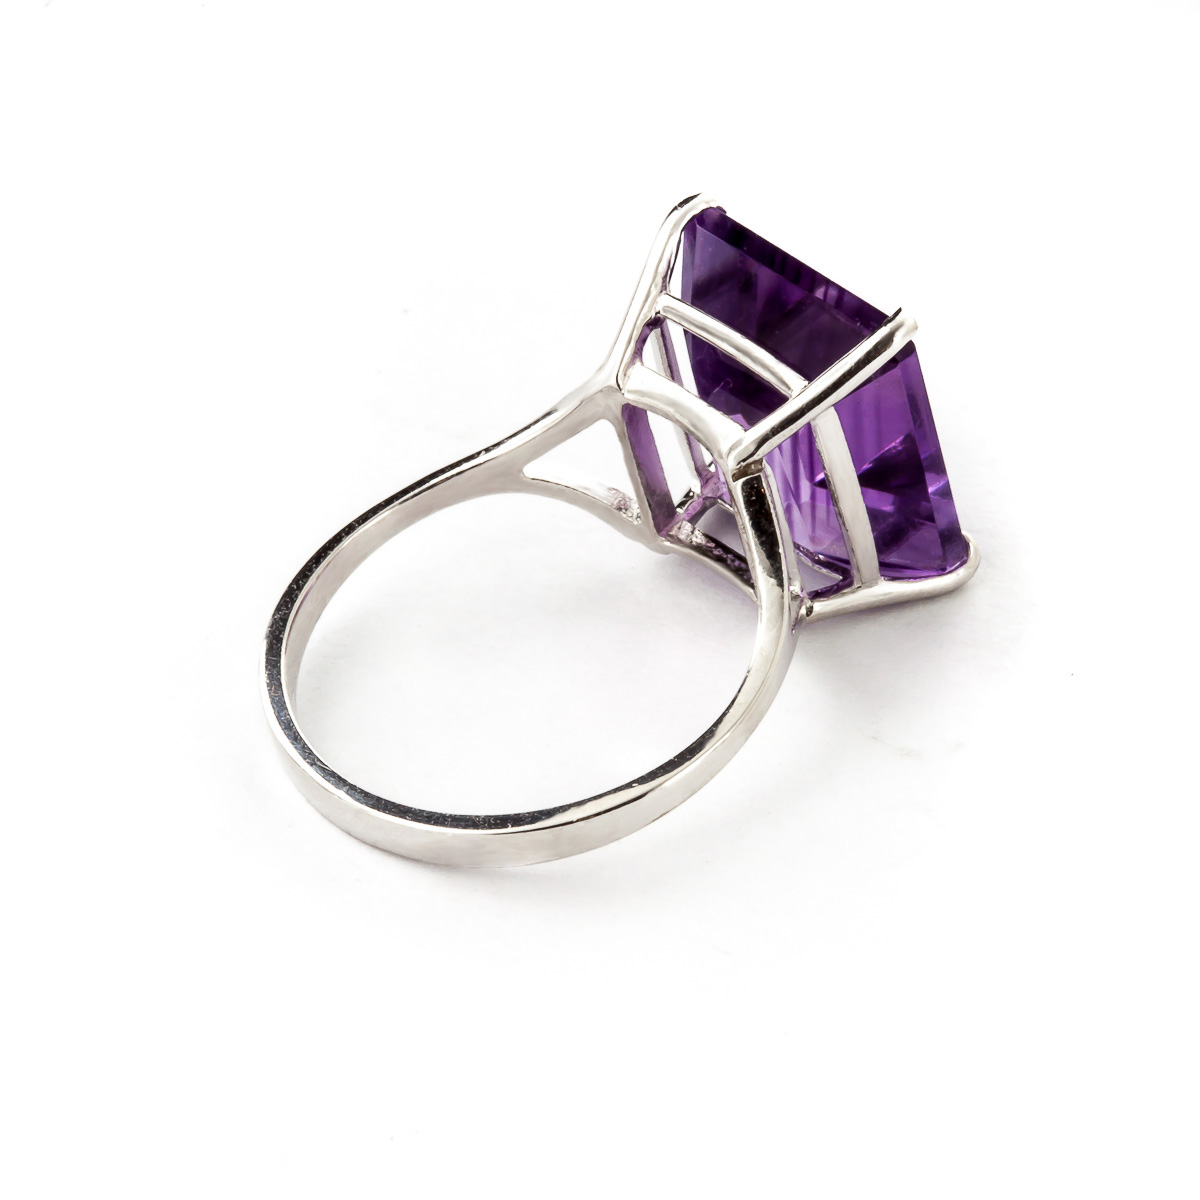 Amethyst Ring 6.5ct in 14K White Gold